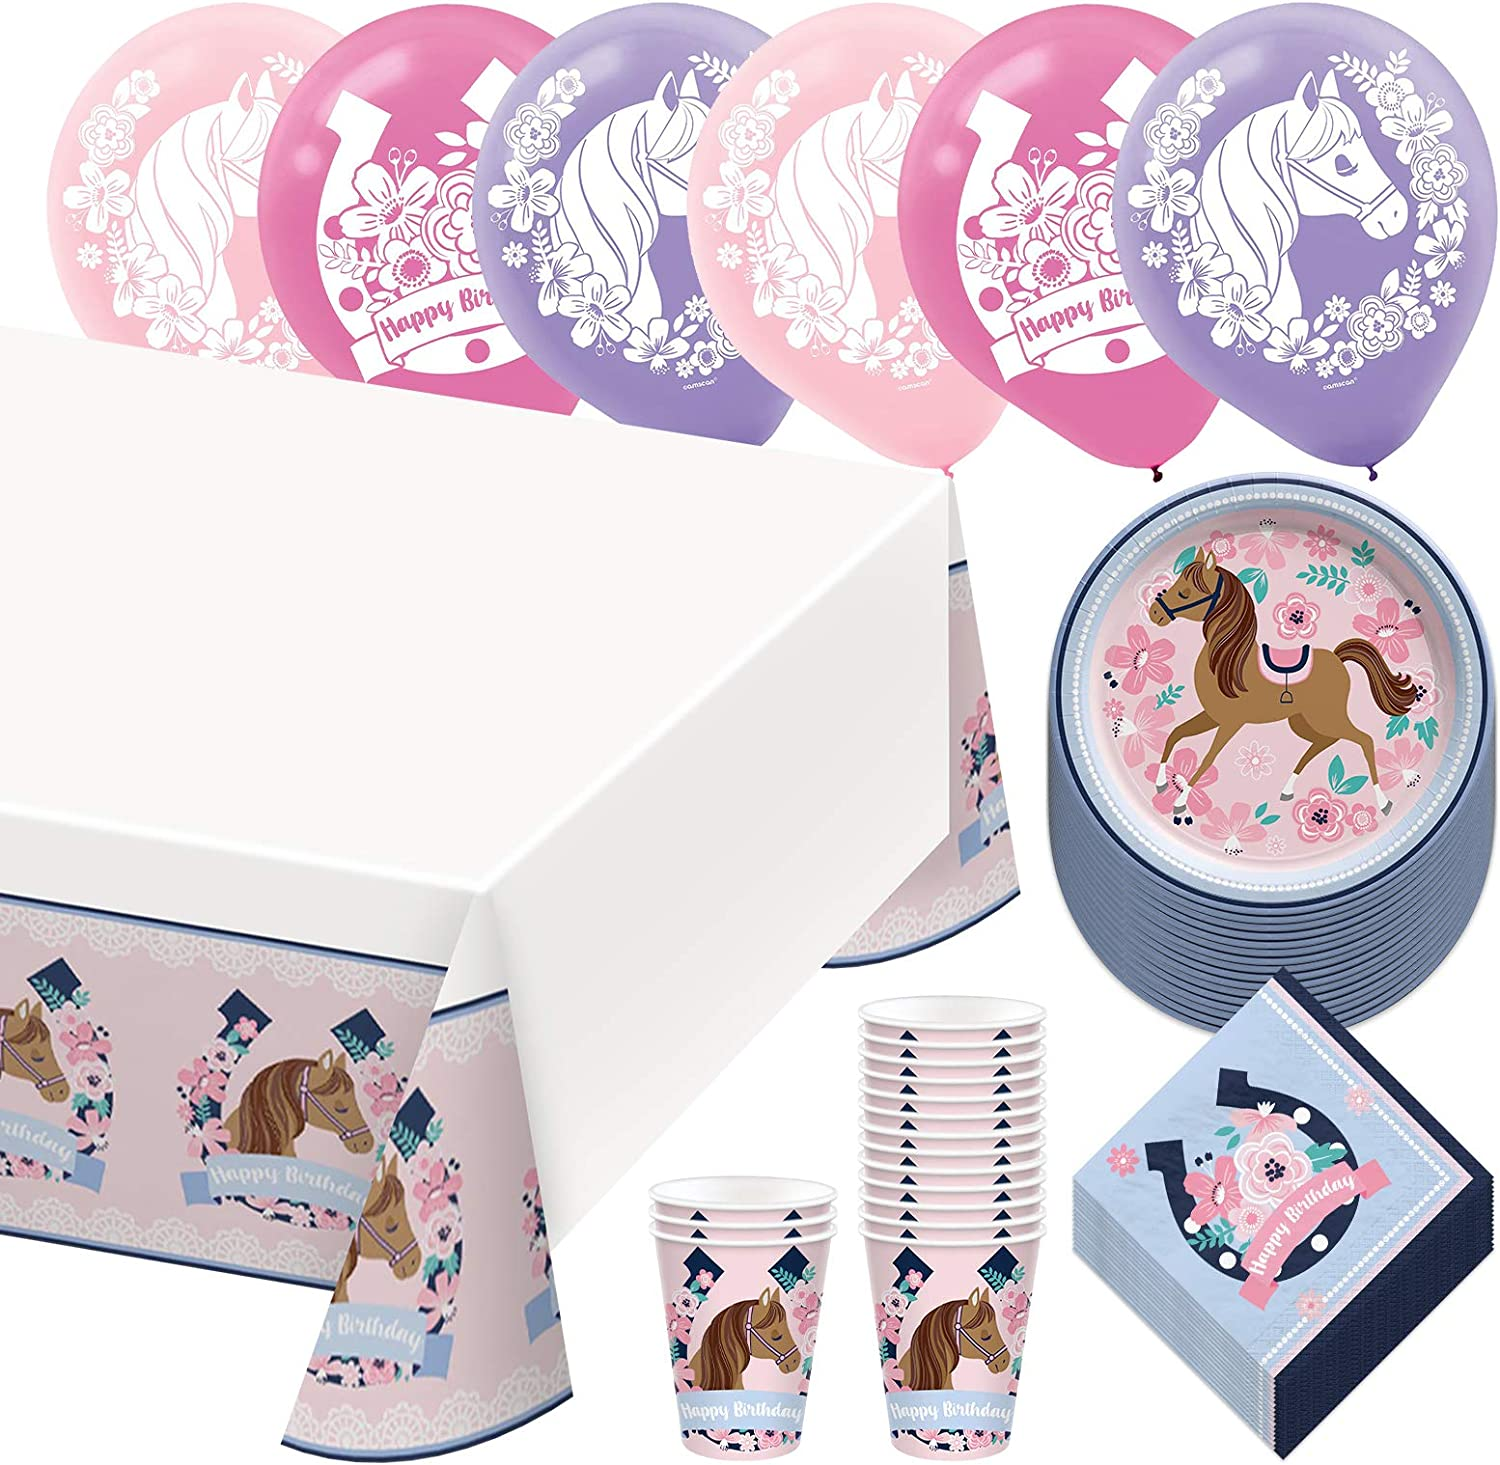 Saddle Up Horse & Floral Dessert Party Pack - Paper Plates, Beverage Napkins, Cups, Table Cover, and Balloons Set (Serves 16)